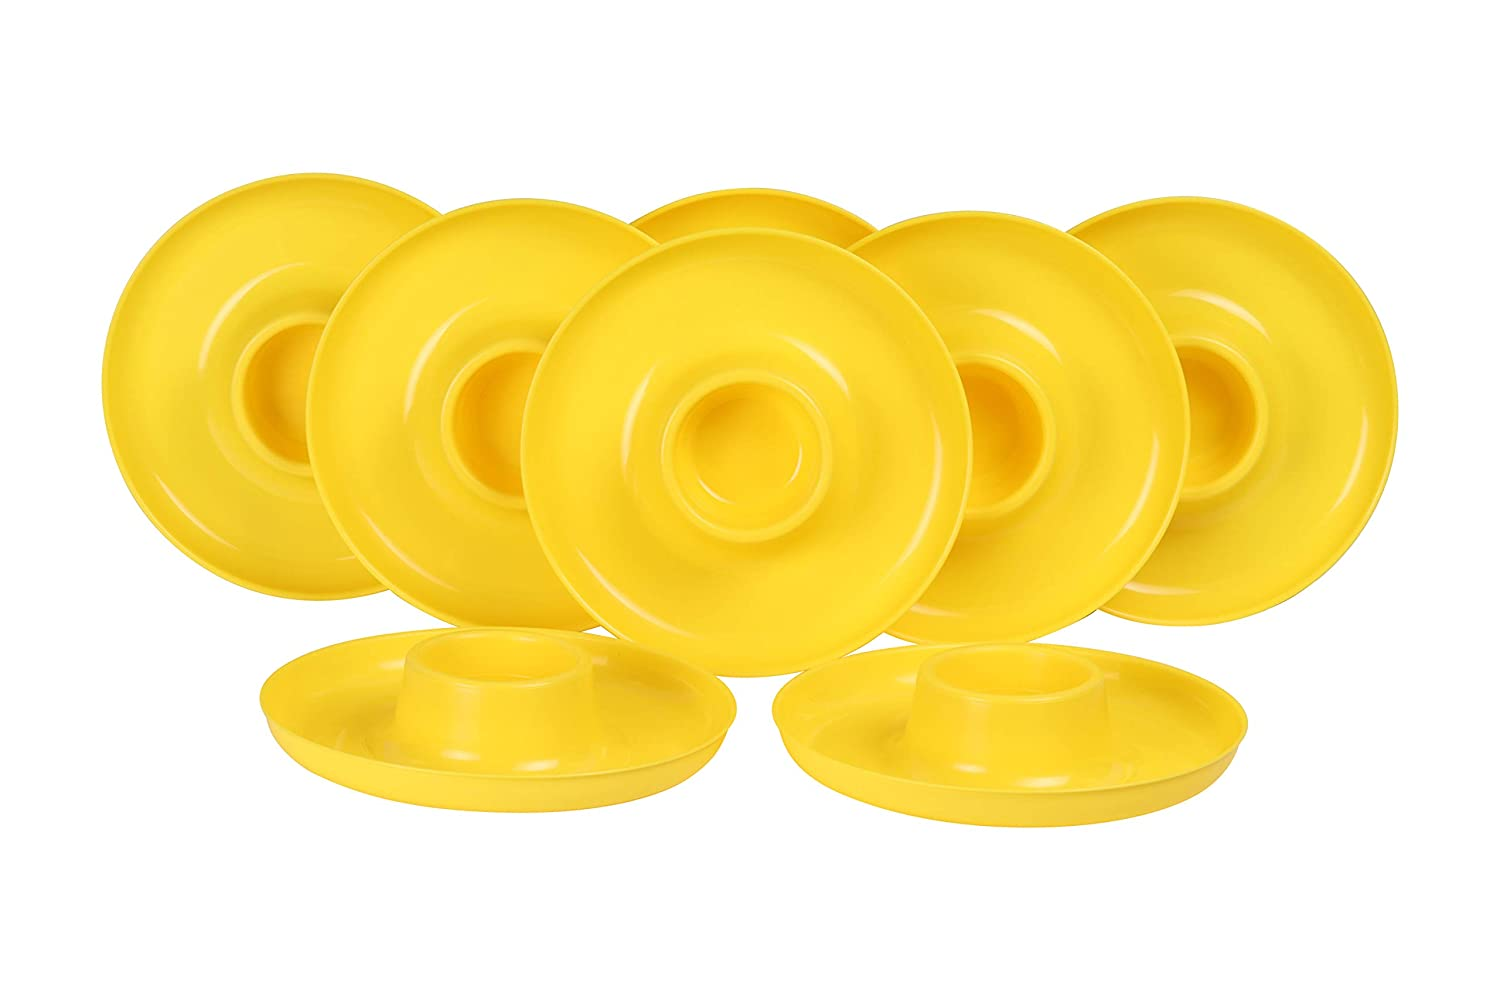 GreatPlate GP-YLO-8PK AZ Yellow Plate 8-Pack, 8 Yellow GreatPlates, Food Tray and Beverage Holder, Dishwasher Safe, Microwave Safe, Made in USA, Picnics, Parties, Tailgates, Appetizers, Great for Kids